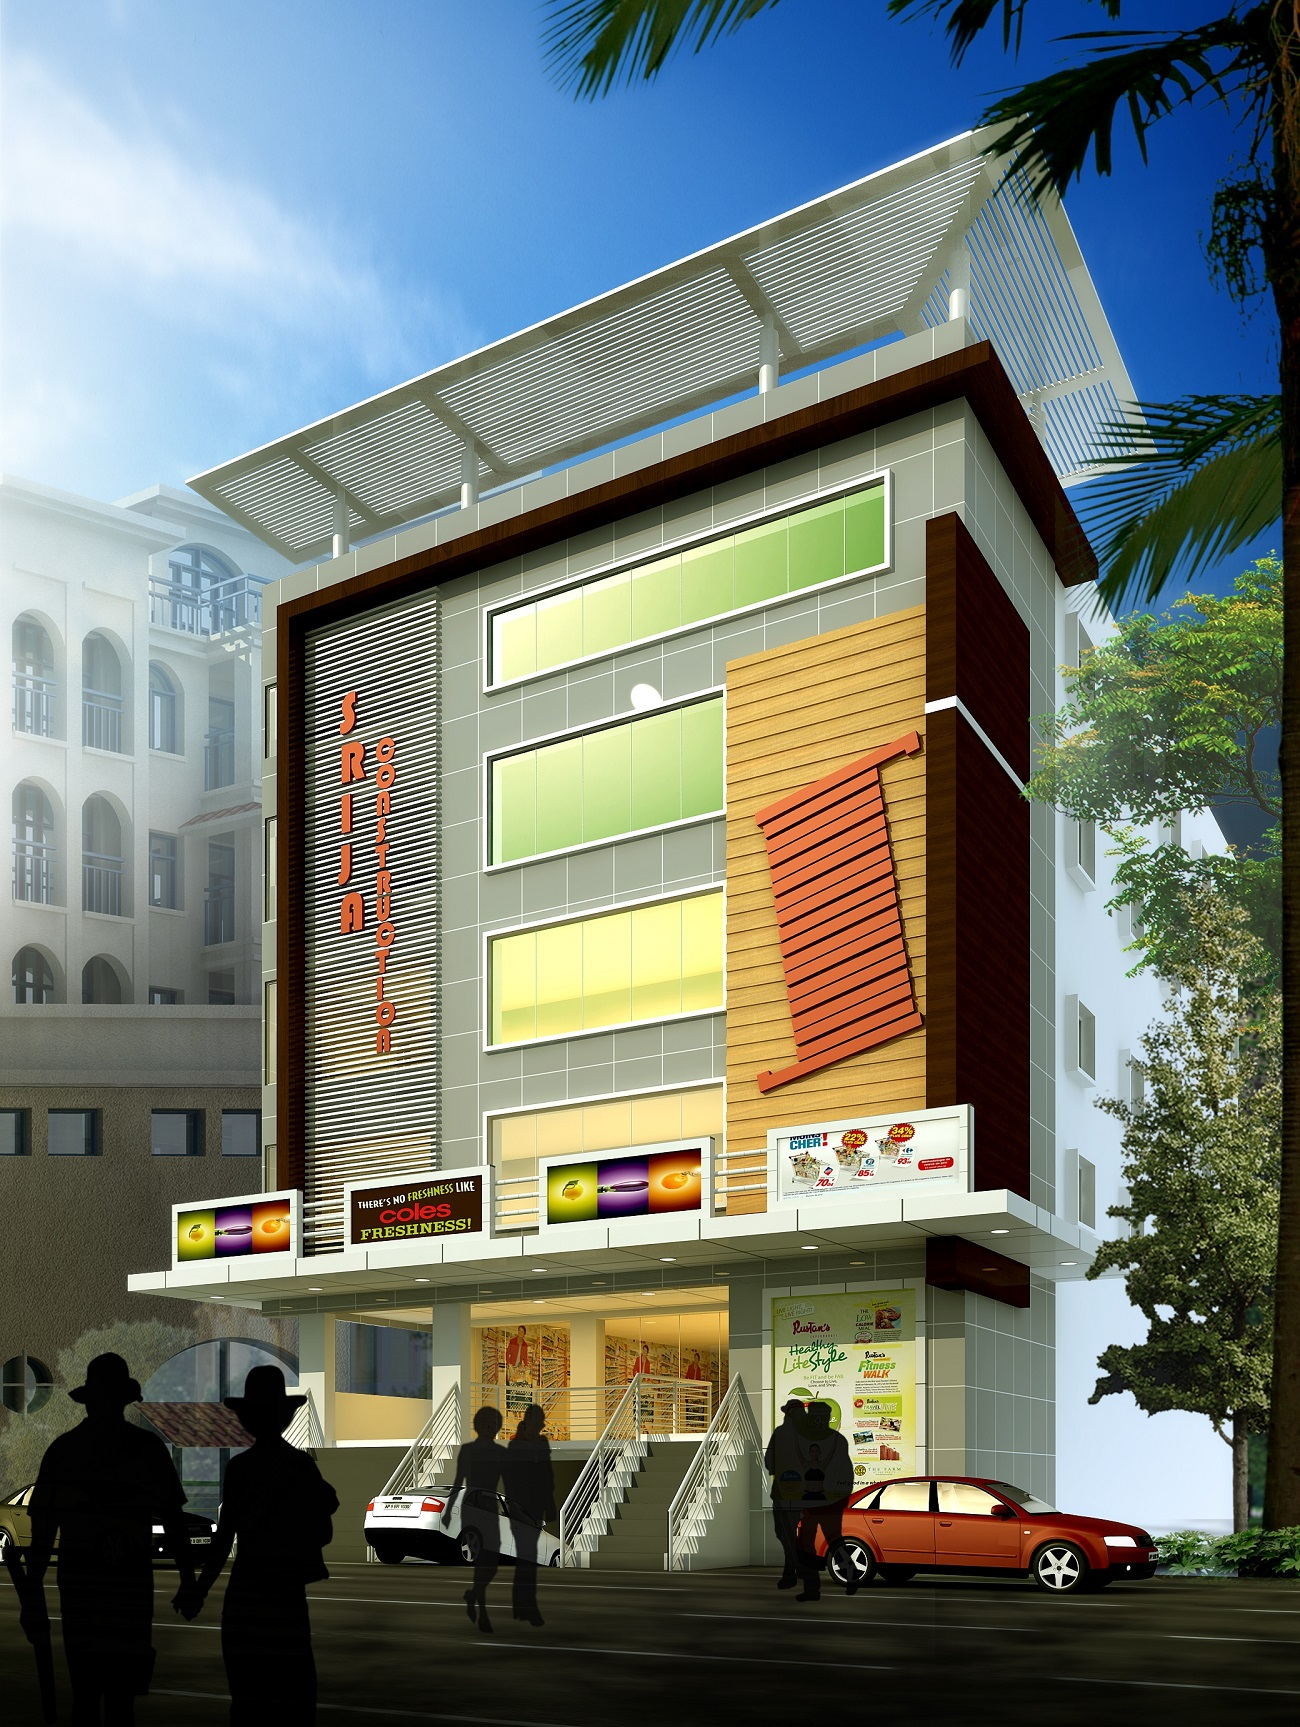 ar-concepts-svss-varma-commercial-elevation-image-b